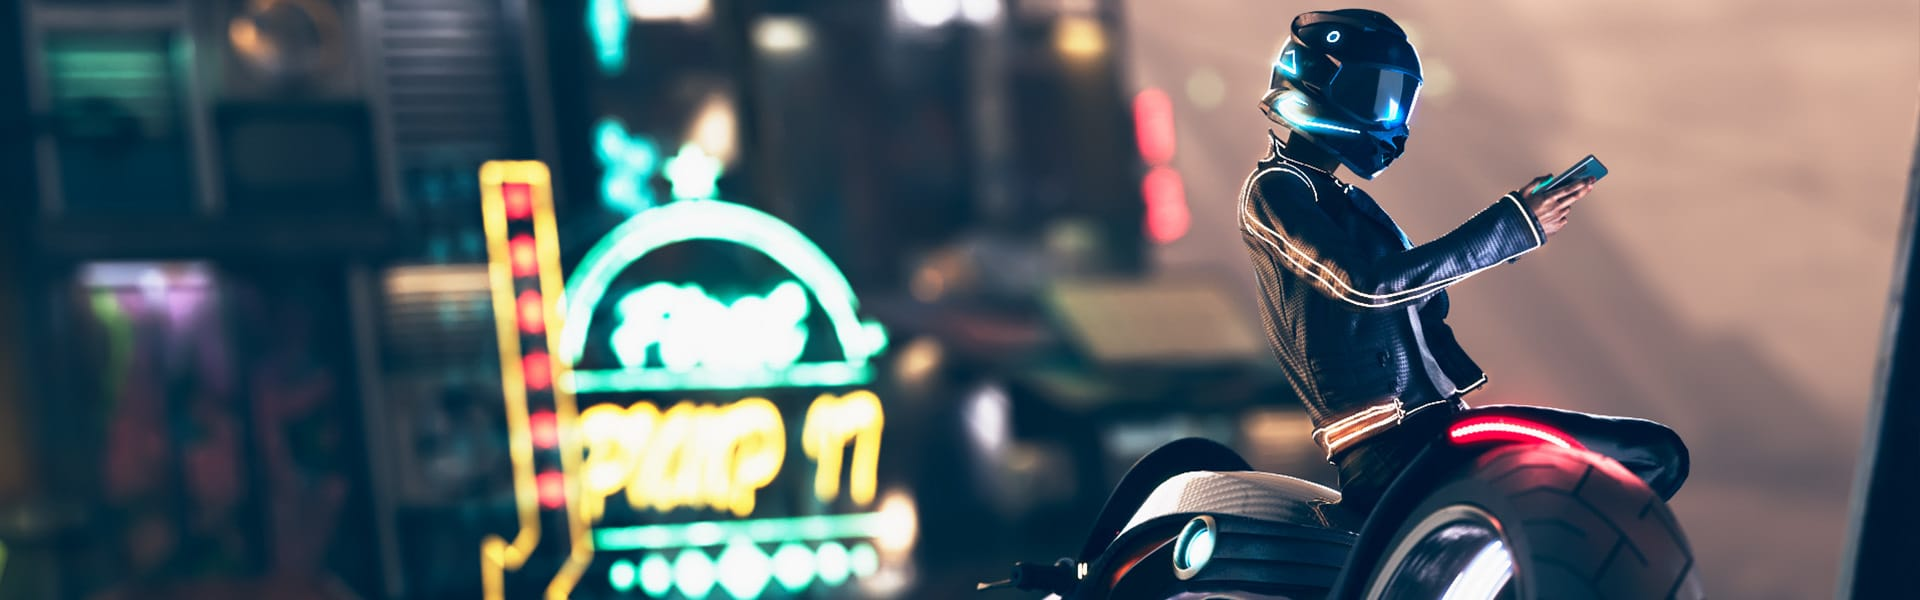 A rider leans against a motorcycle in a futuristic city